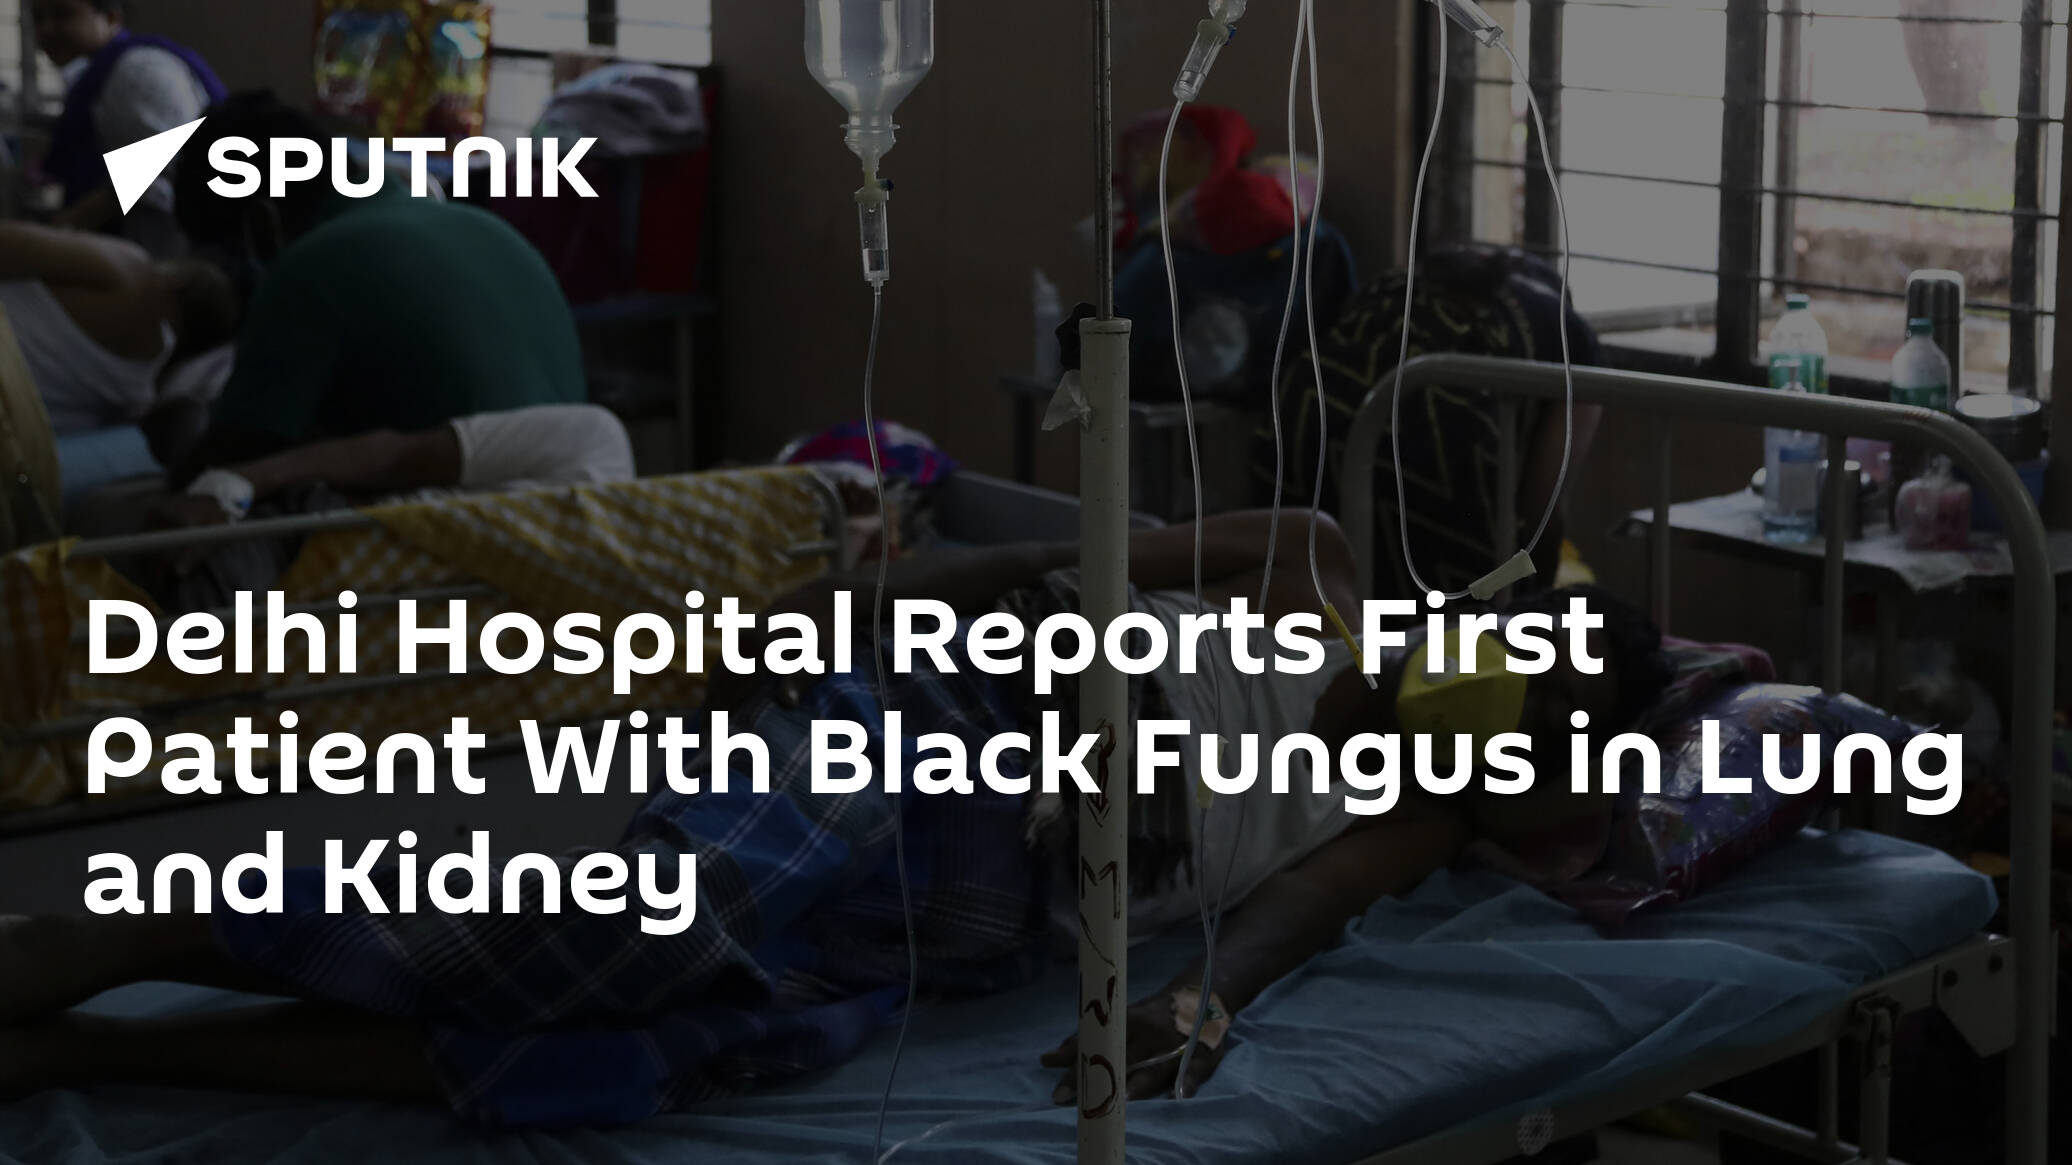 Delhi Hospital Reports First Patient With Black Fungus in Lung and Kidney